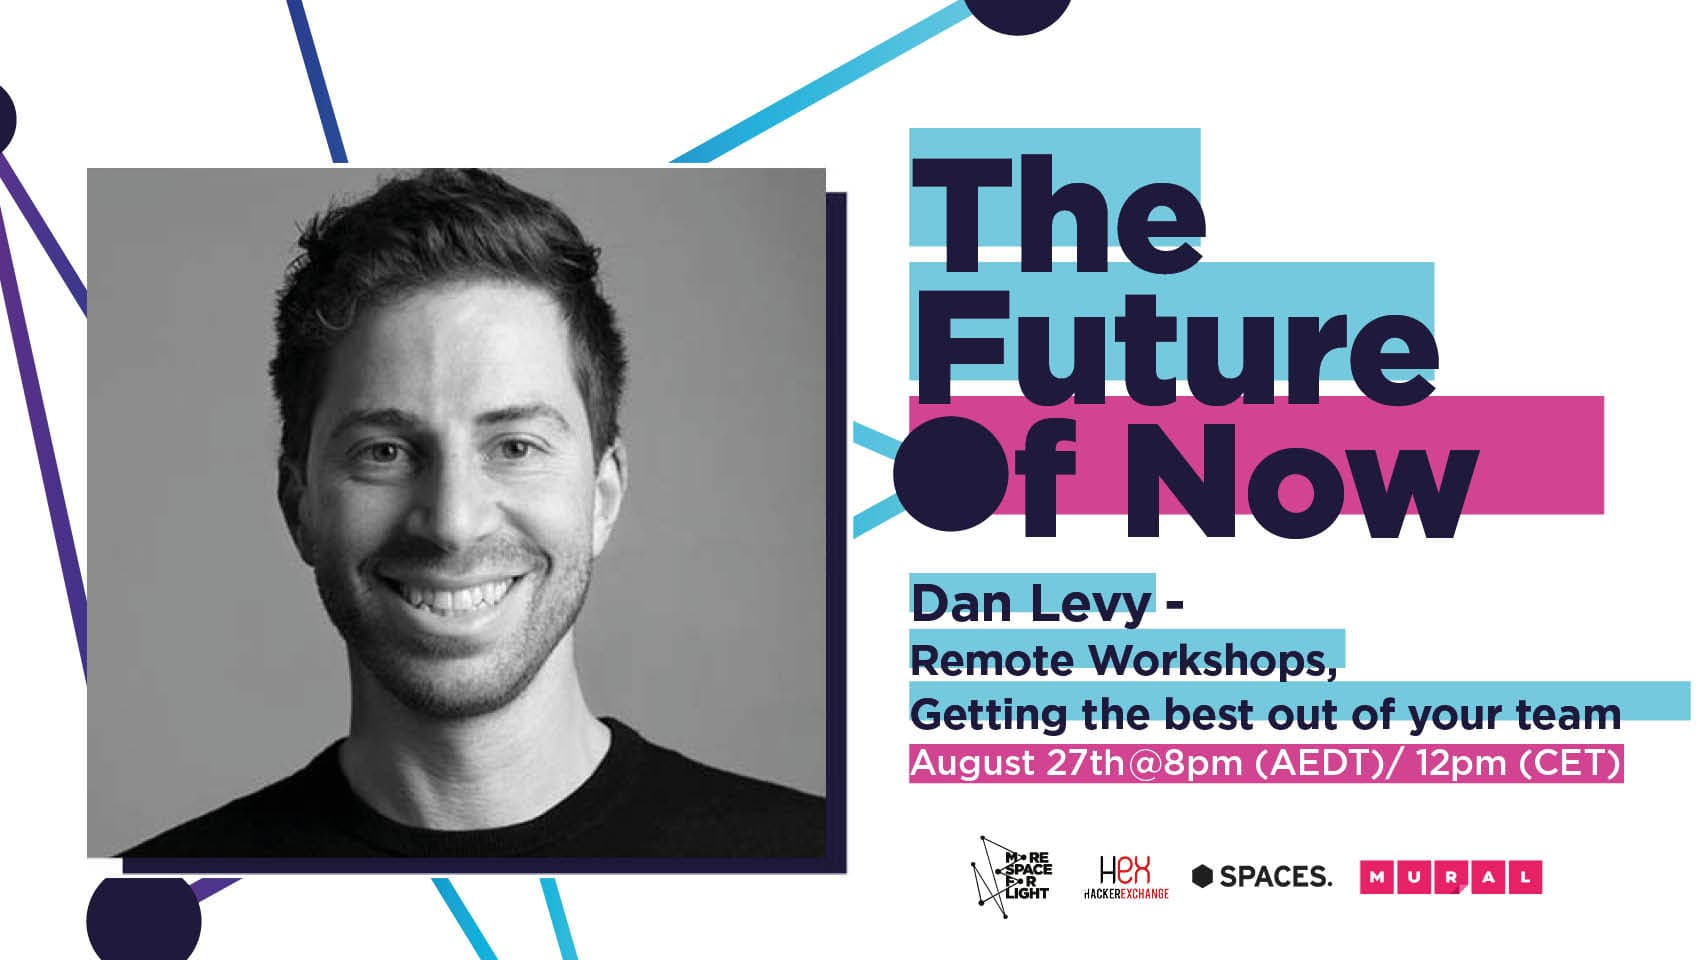 Remote Workshops, Getting the best out of your team with Dan Levy